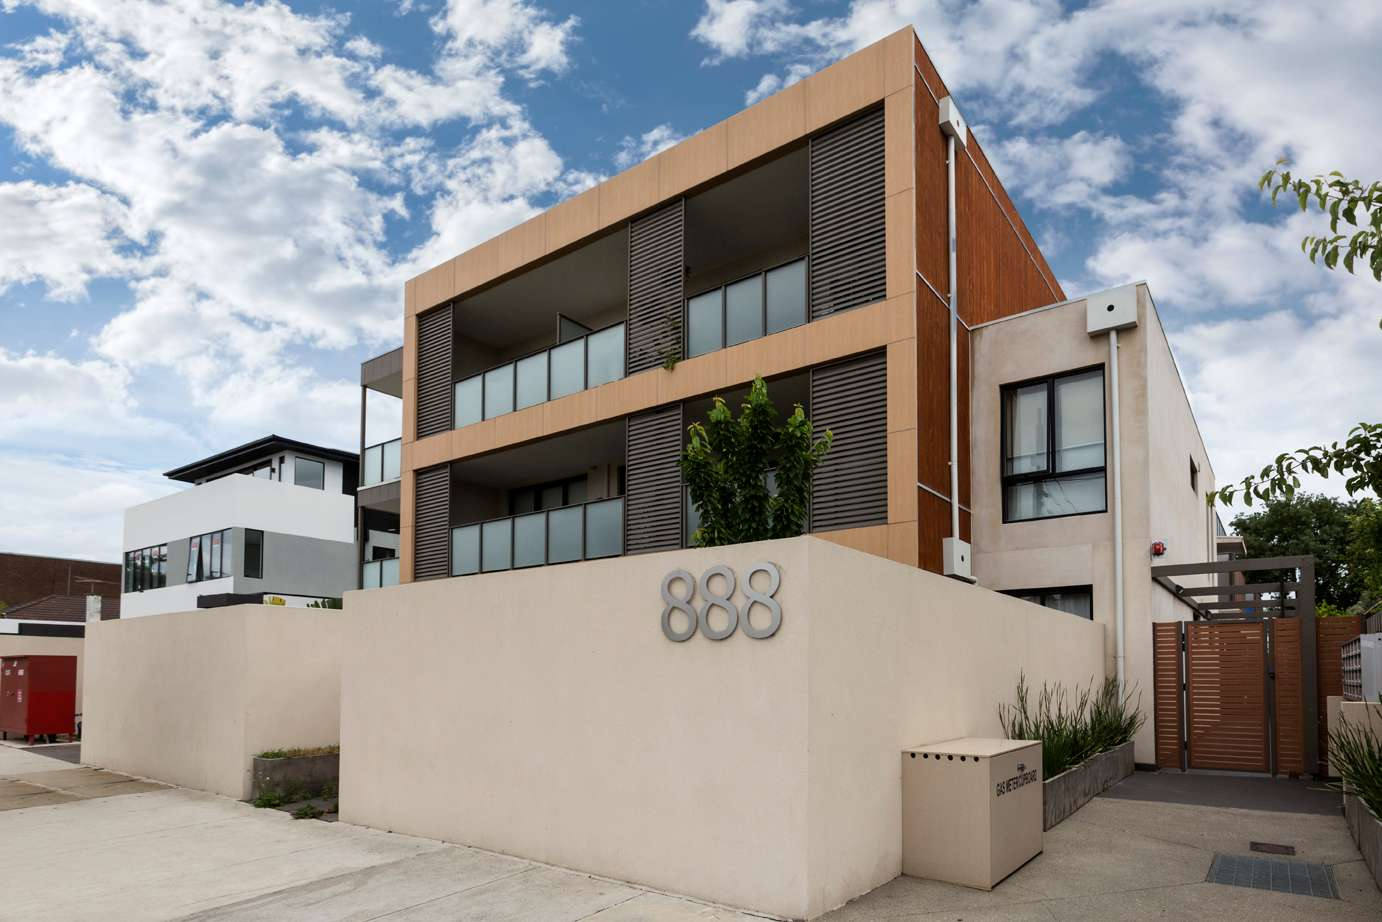 Main view of Homely apartment listing, 206/888 Glen Huntly Road, Caulfield South, VIC 3162